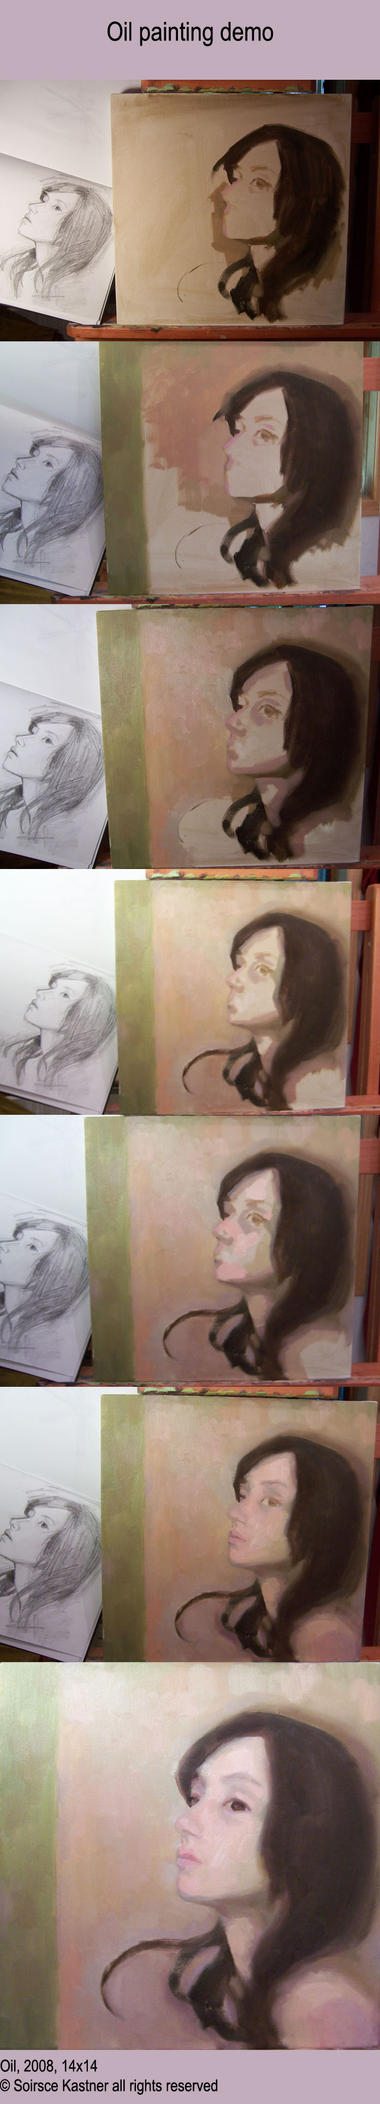 Oil painting demo by Soirsce